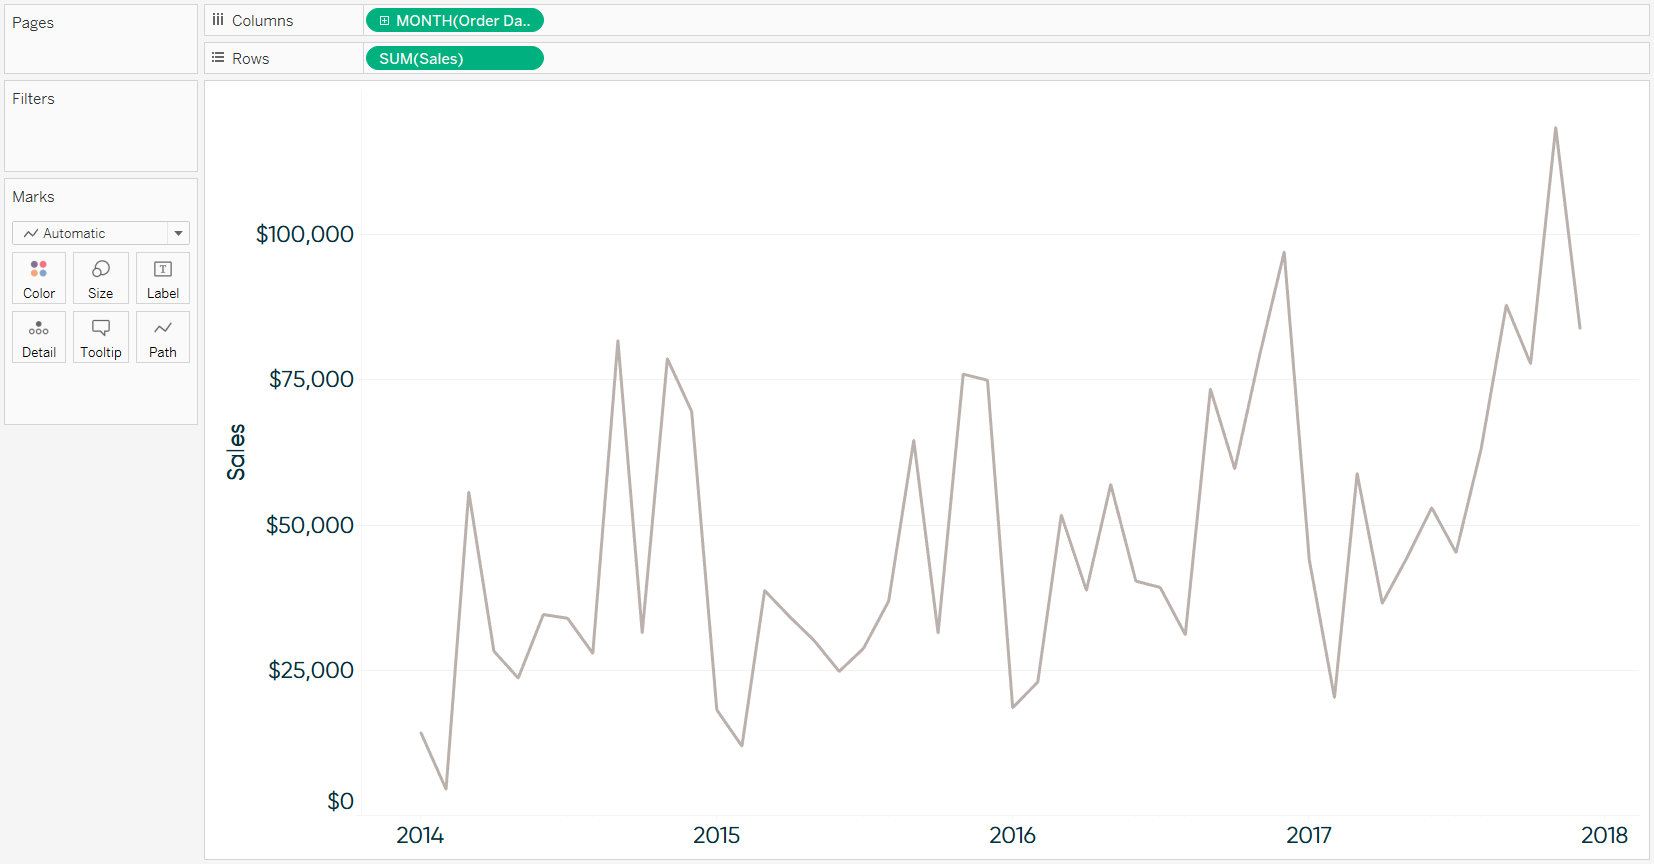 Tableau Sales by Month Line Graph for Anomaly Detection